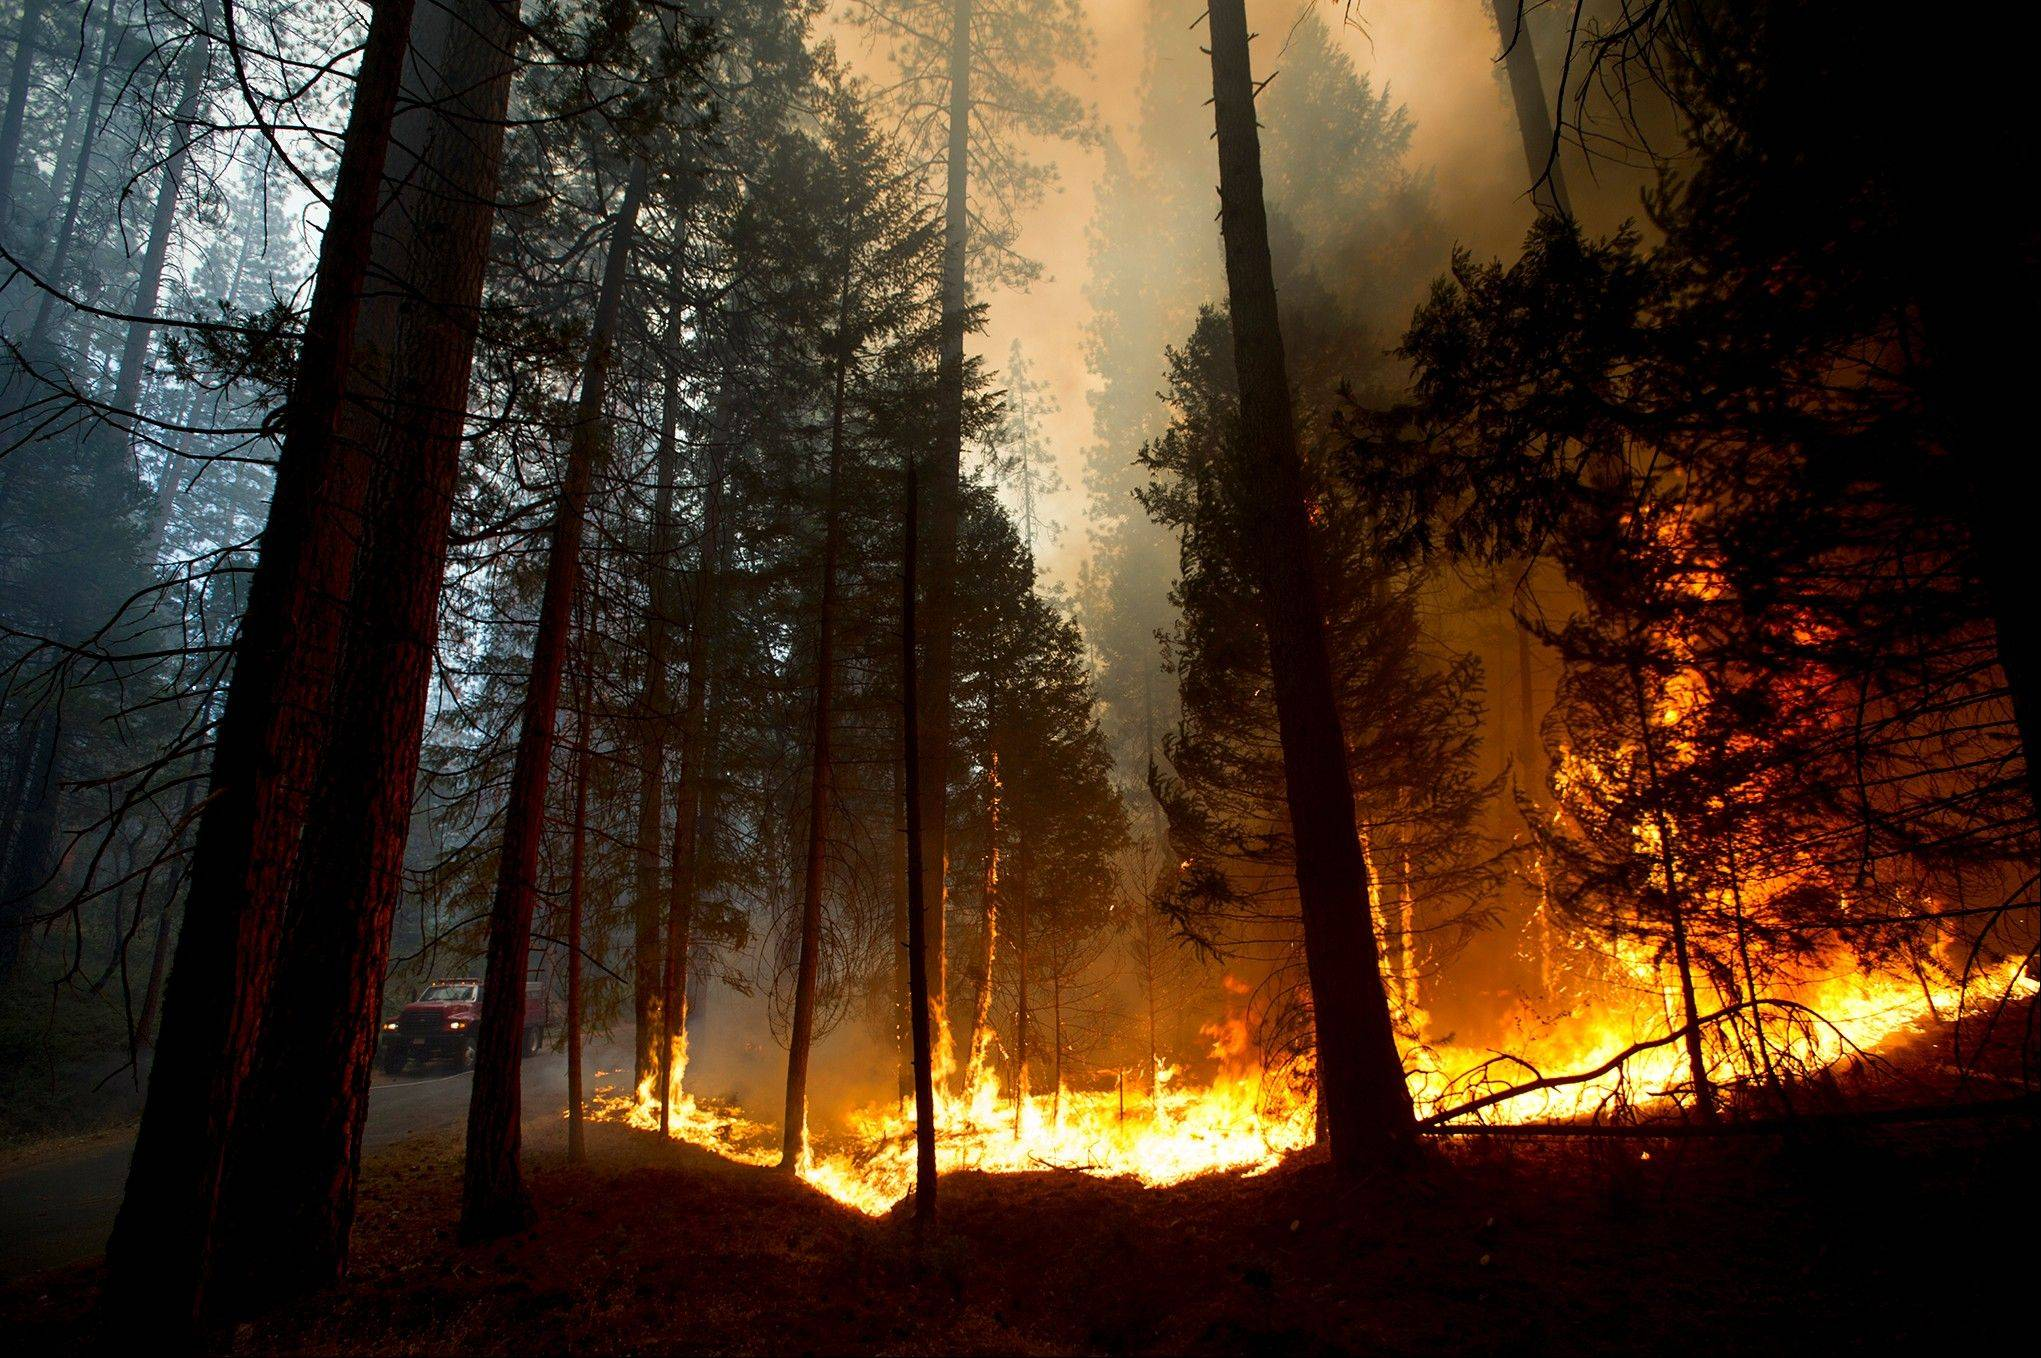 Fire rages out of control in the Stanislaus National Forest Thursday, Aug. 22, 2013, In California. A wildfire outside Yosemite National Park nearly quadrupled in size Thursday, prompting officers to warn residents in a gated community to evacuate their homes and leading scores of tourists to leave the area during peak season.